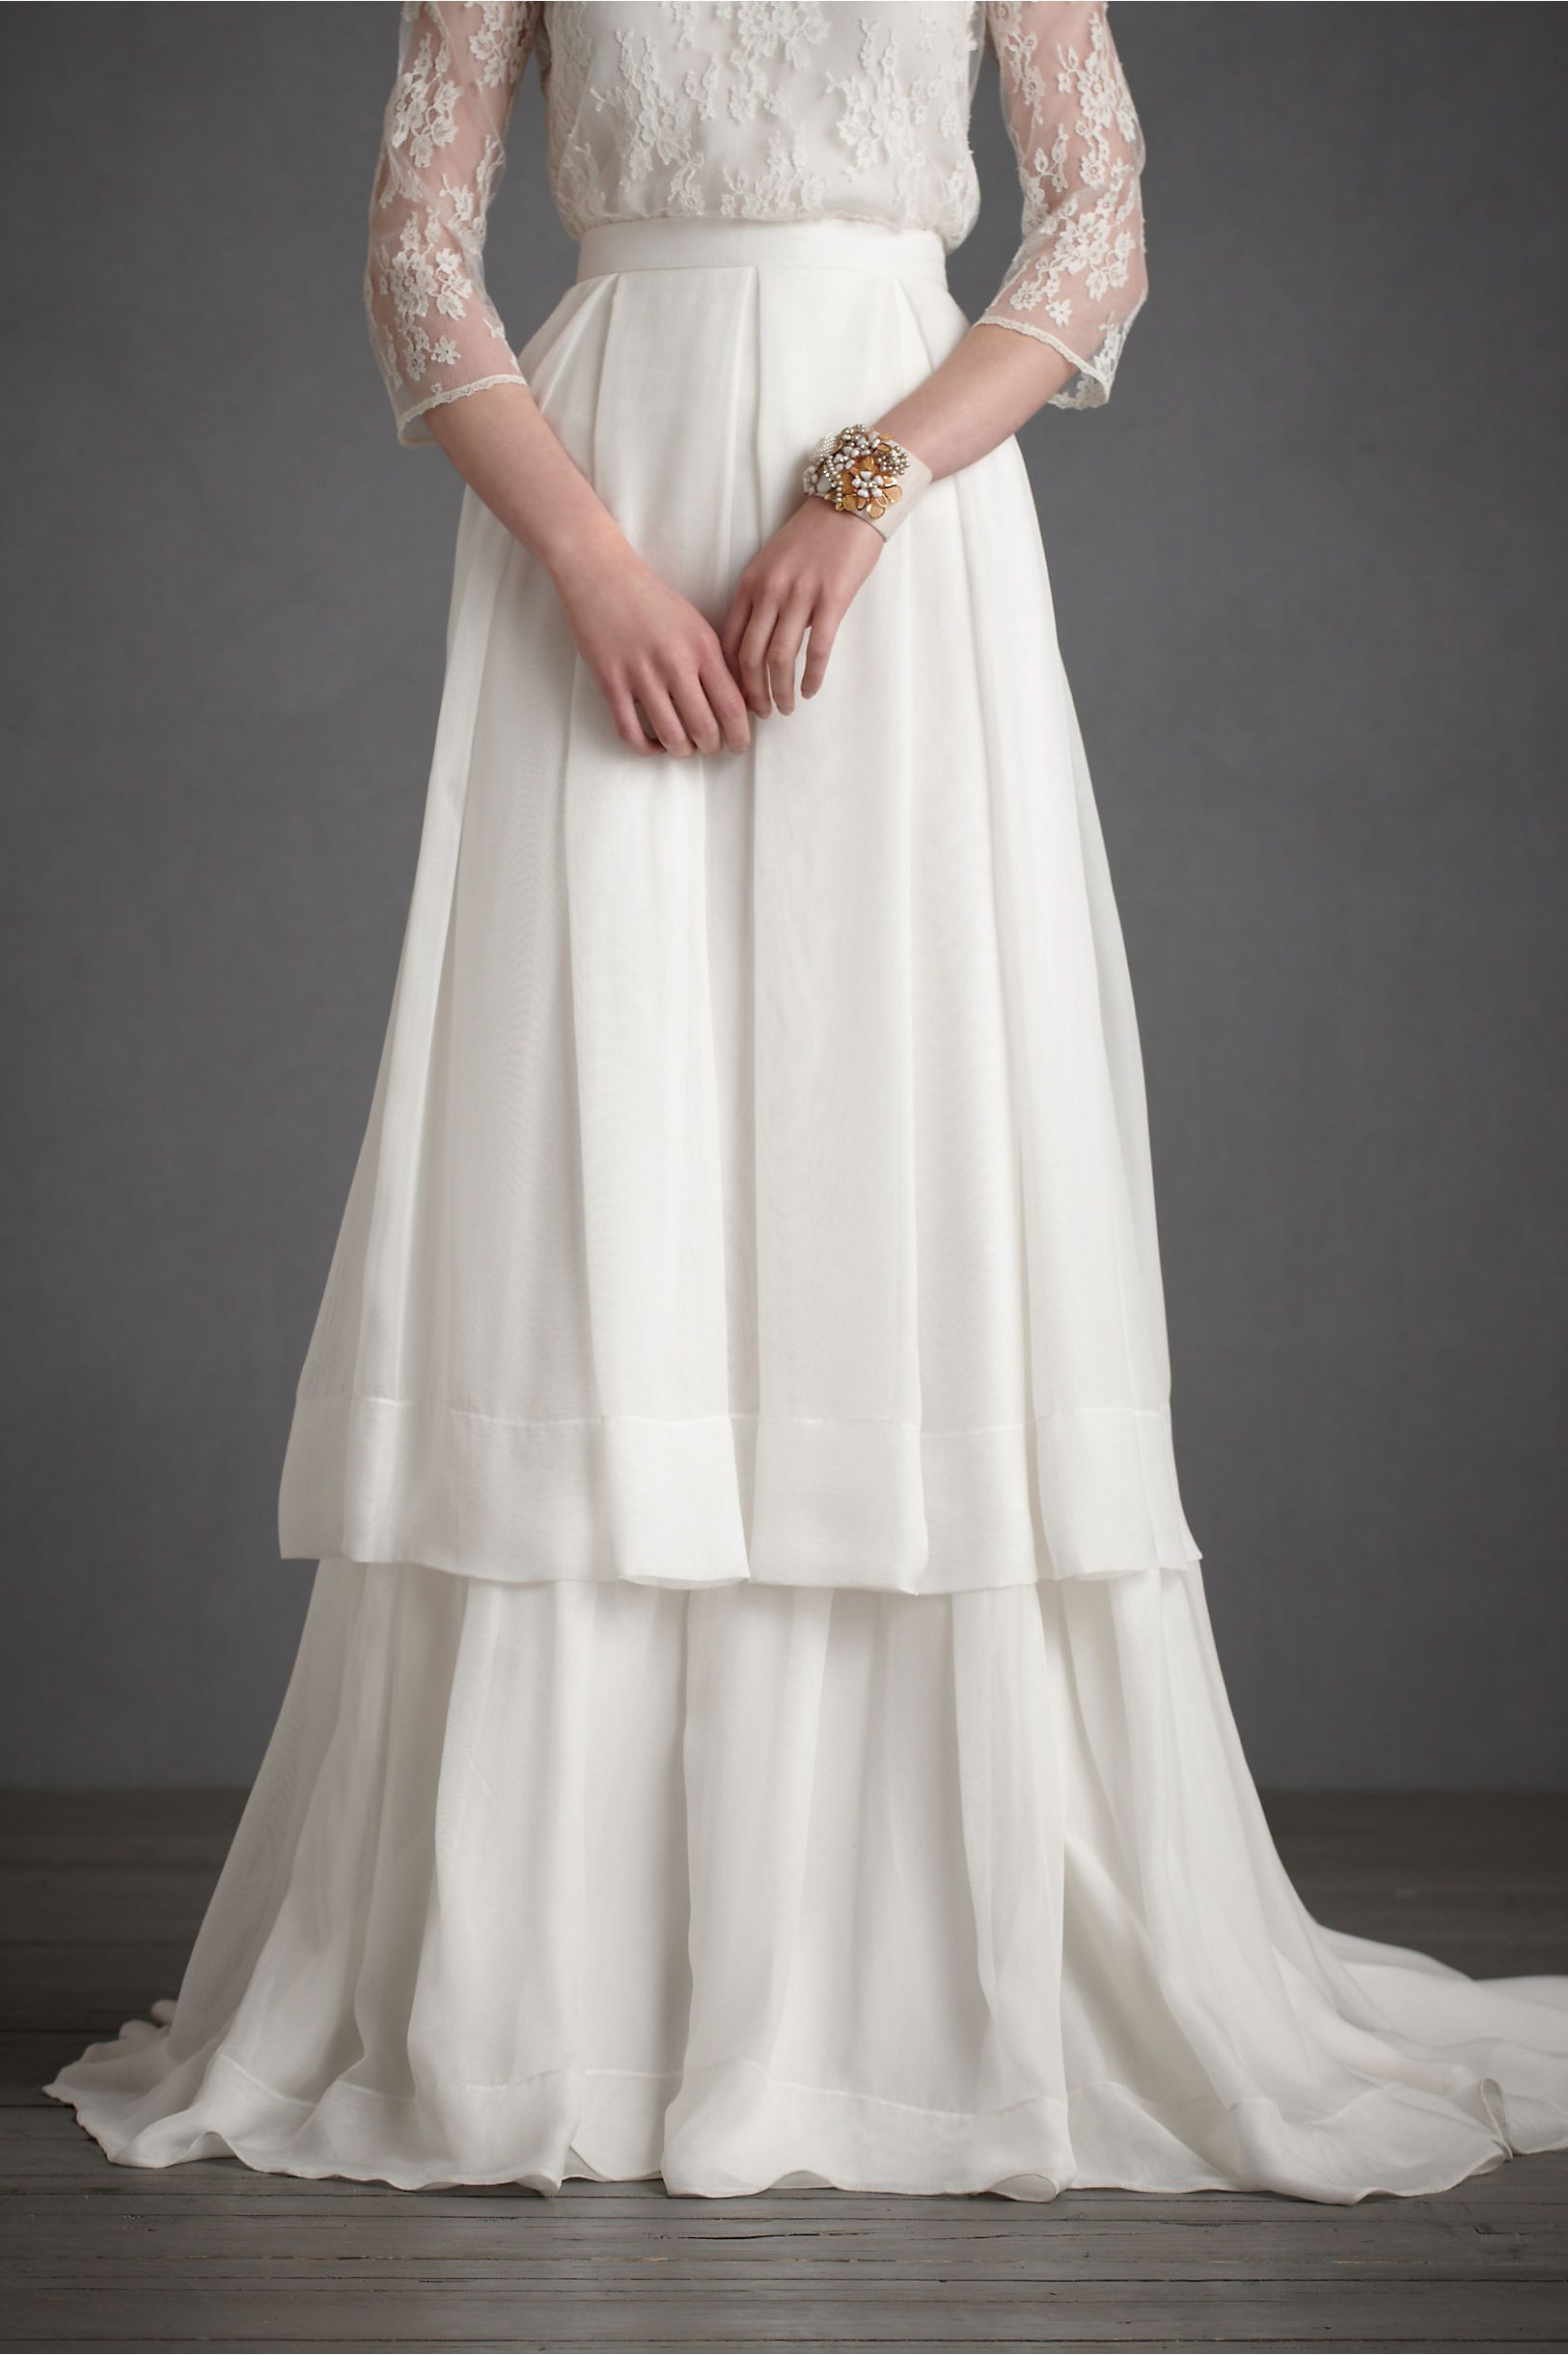 Anne of green gables wedding dress  Lazard Skirt in Separates BHLDN  Bridal Couture is my thing